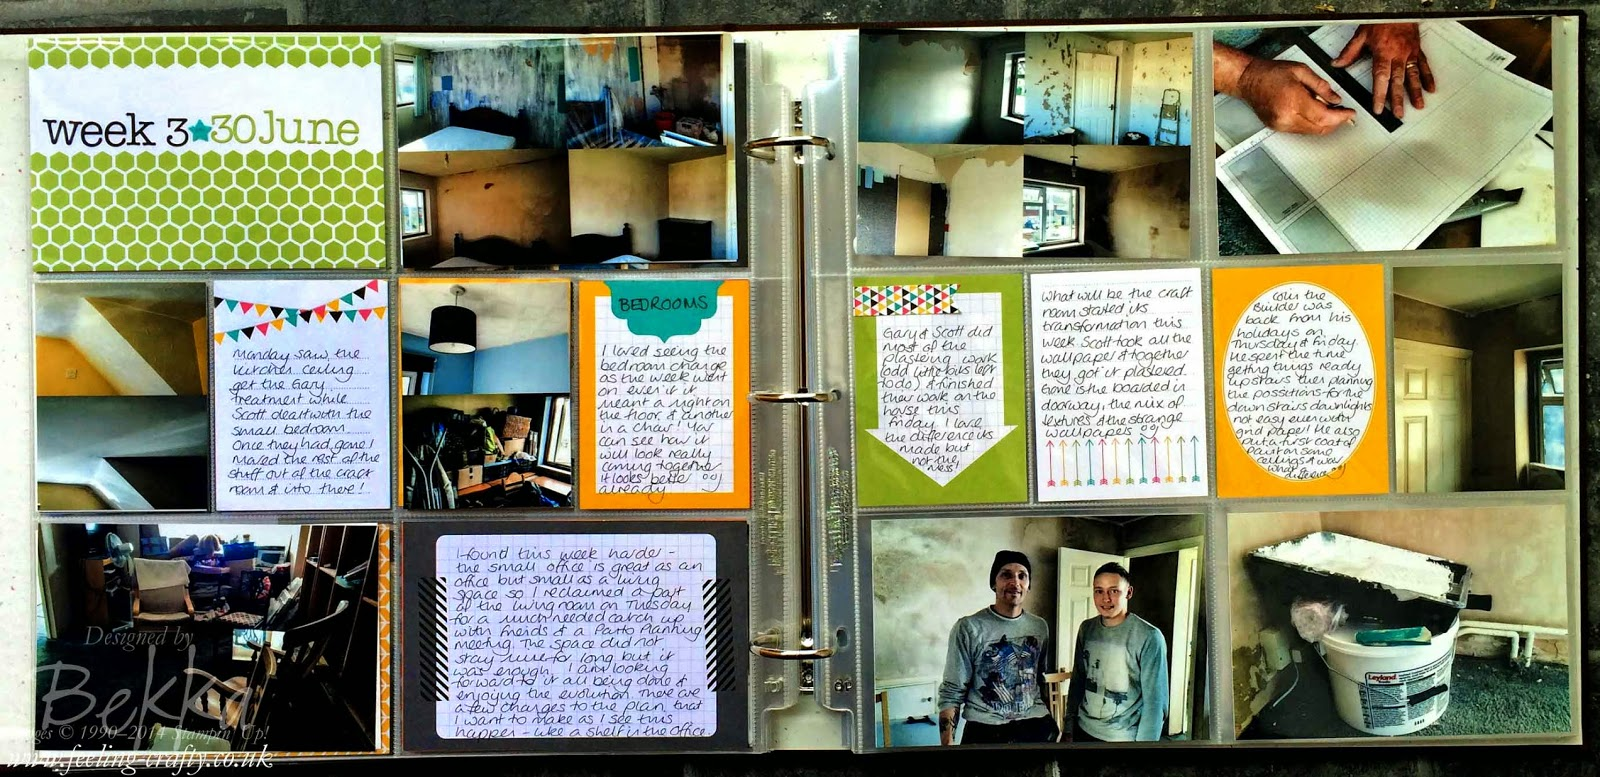 Project Life Page about my House Renovations by Bekka